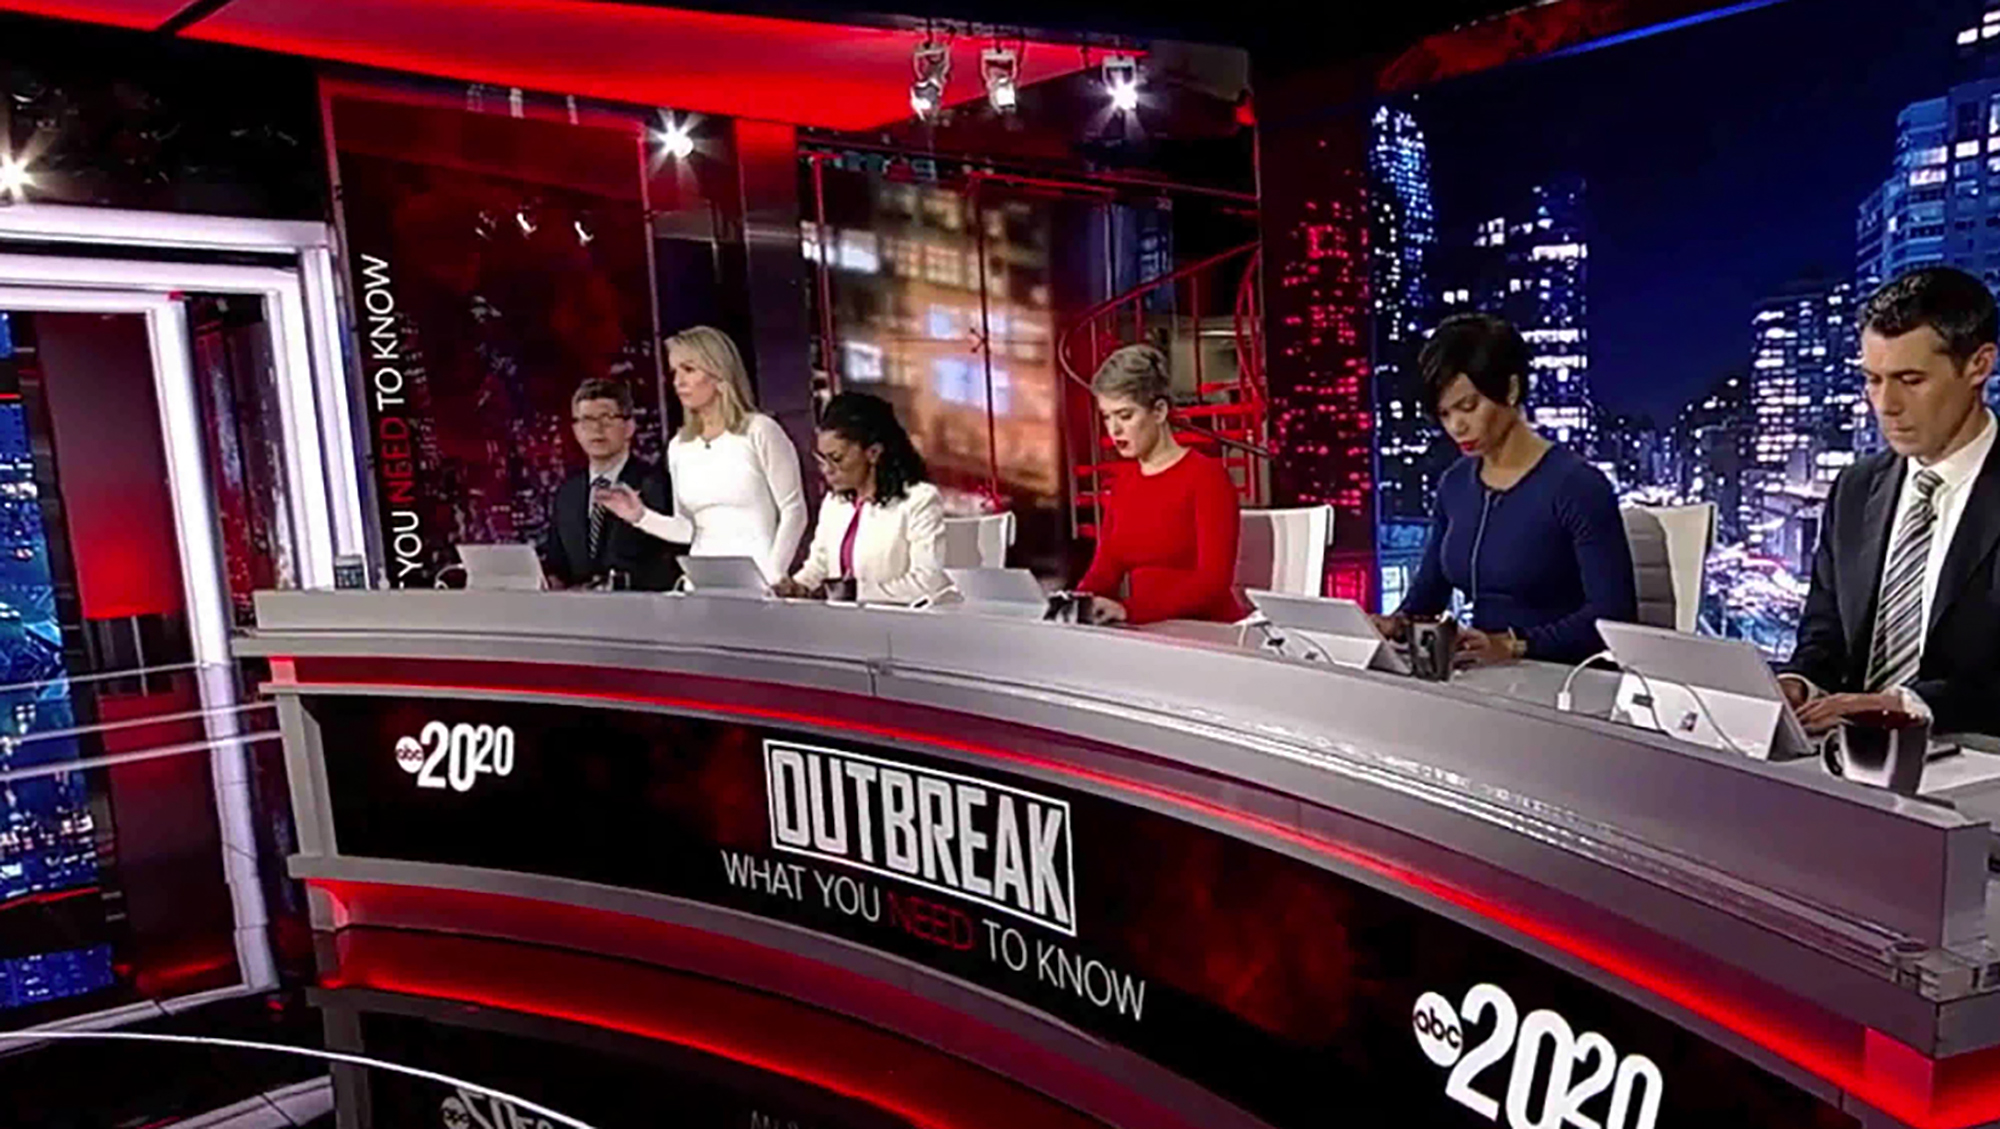 """20/20 - Outbreak: What You Need To Know"" ABC News - screen design by K Brandon Bell"